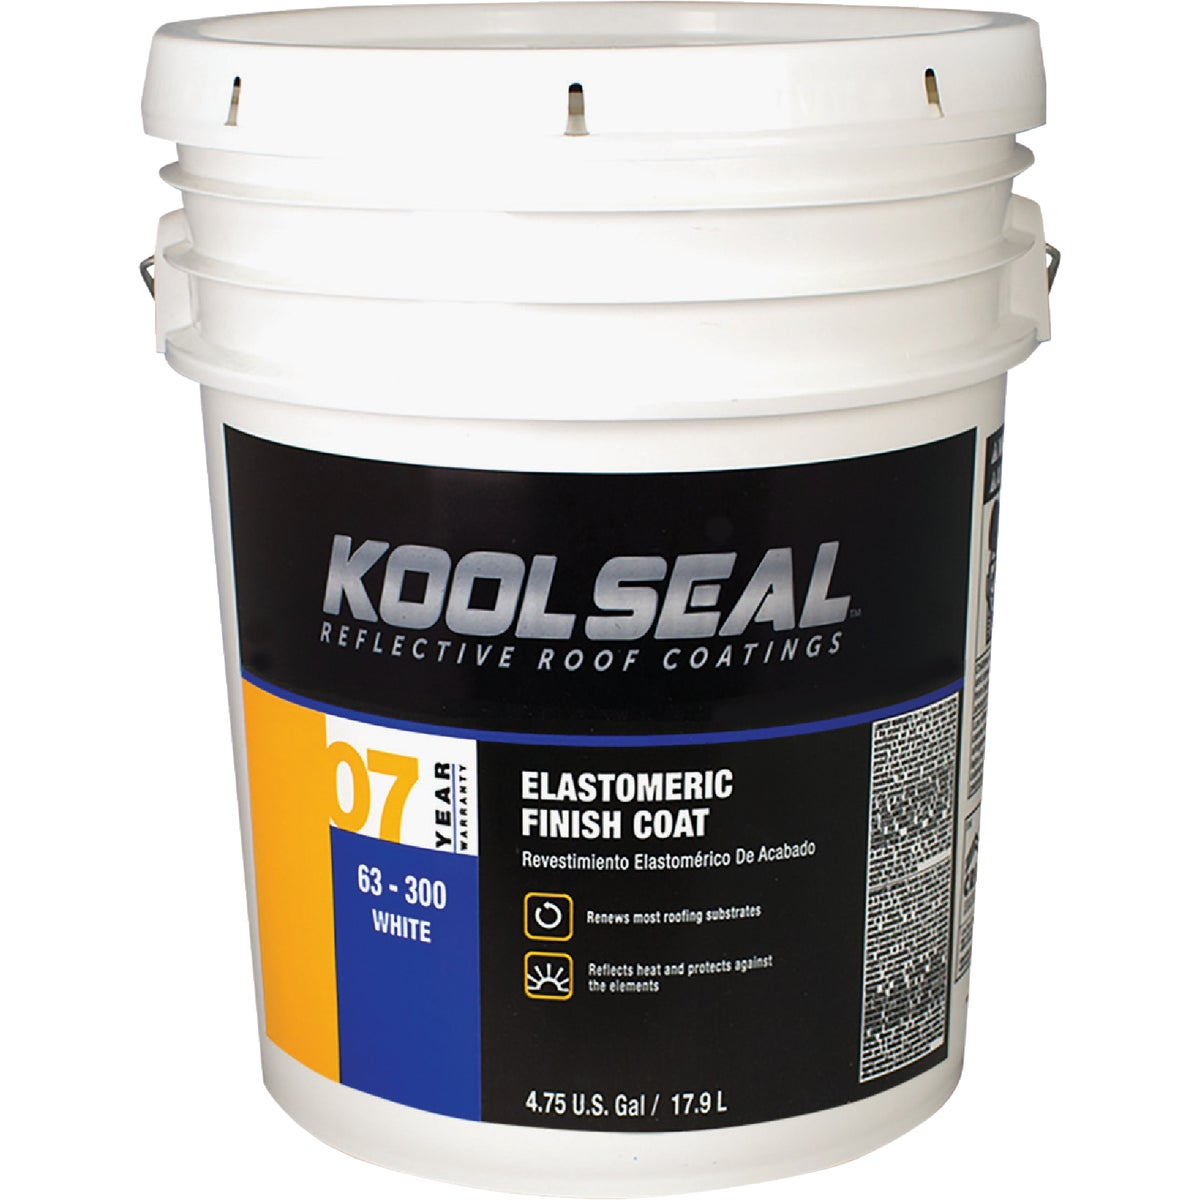 5GAL ELASTMRC RF COATING - KST063300-20 by Kool Seal